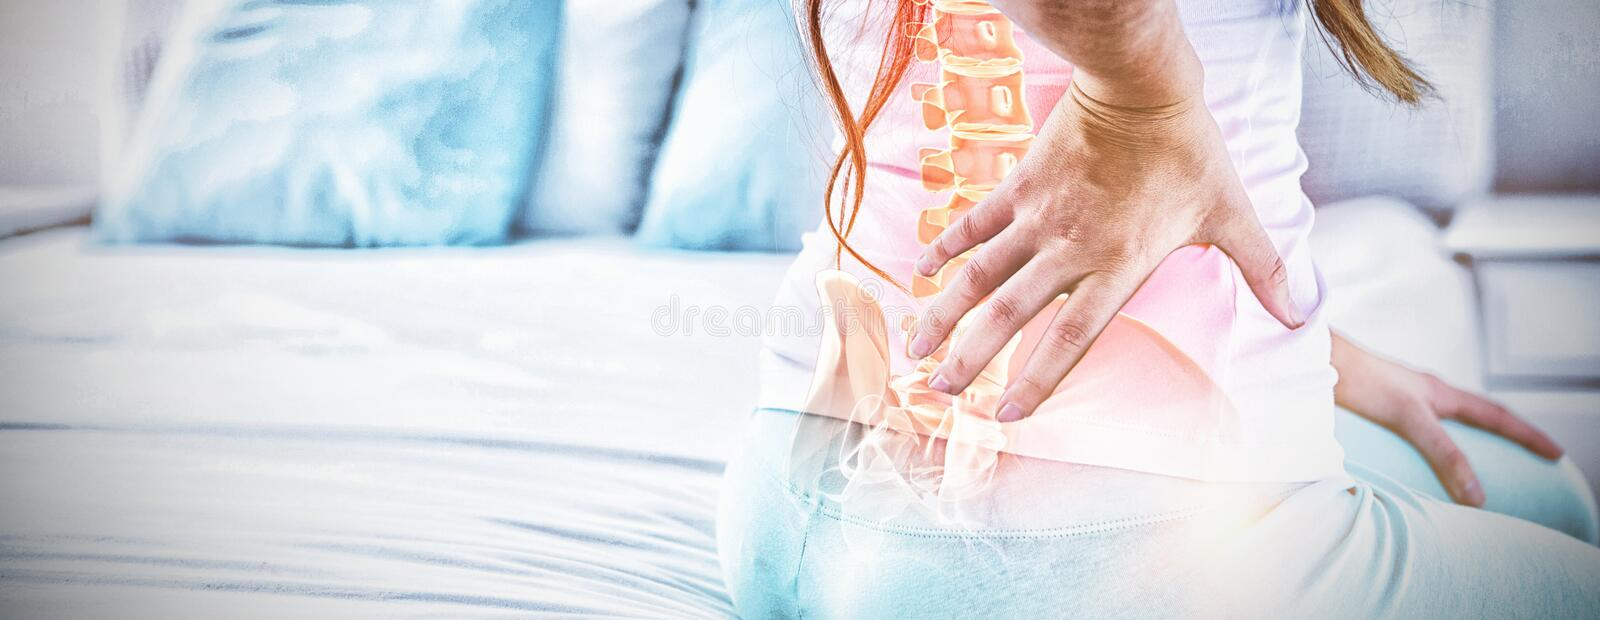 Digital composite of highlighted spine of woman with back pain. At home royalty free stock photography